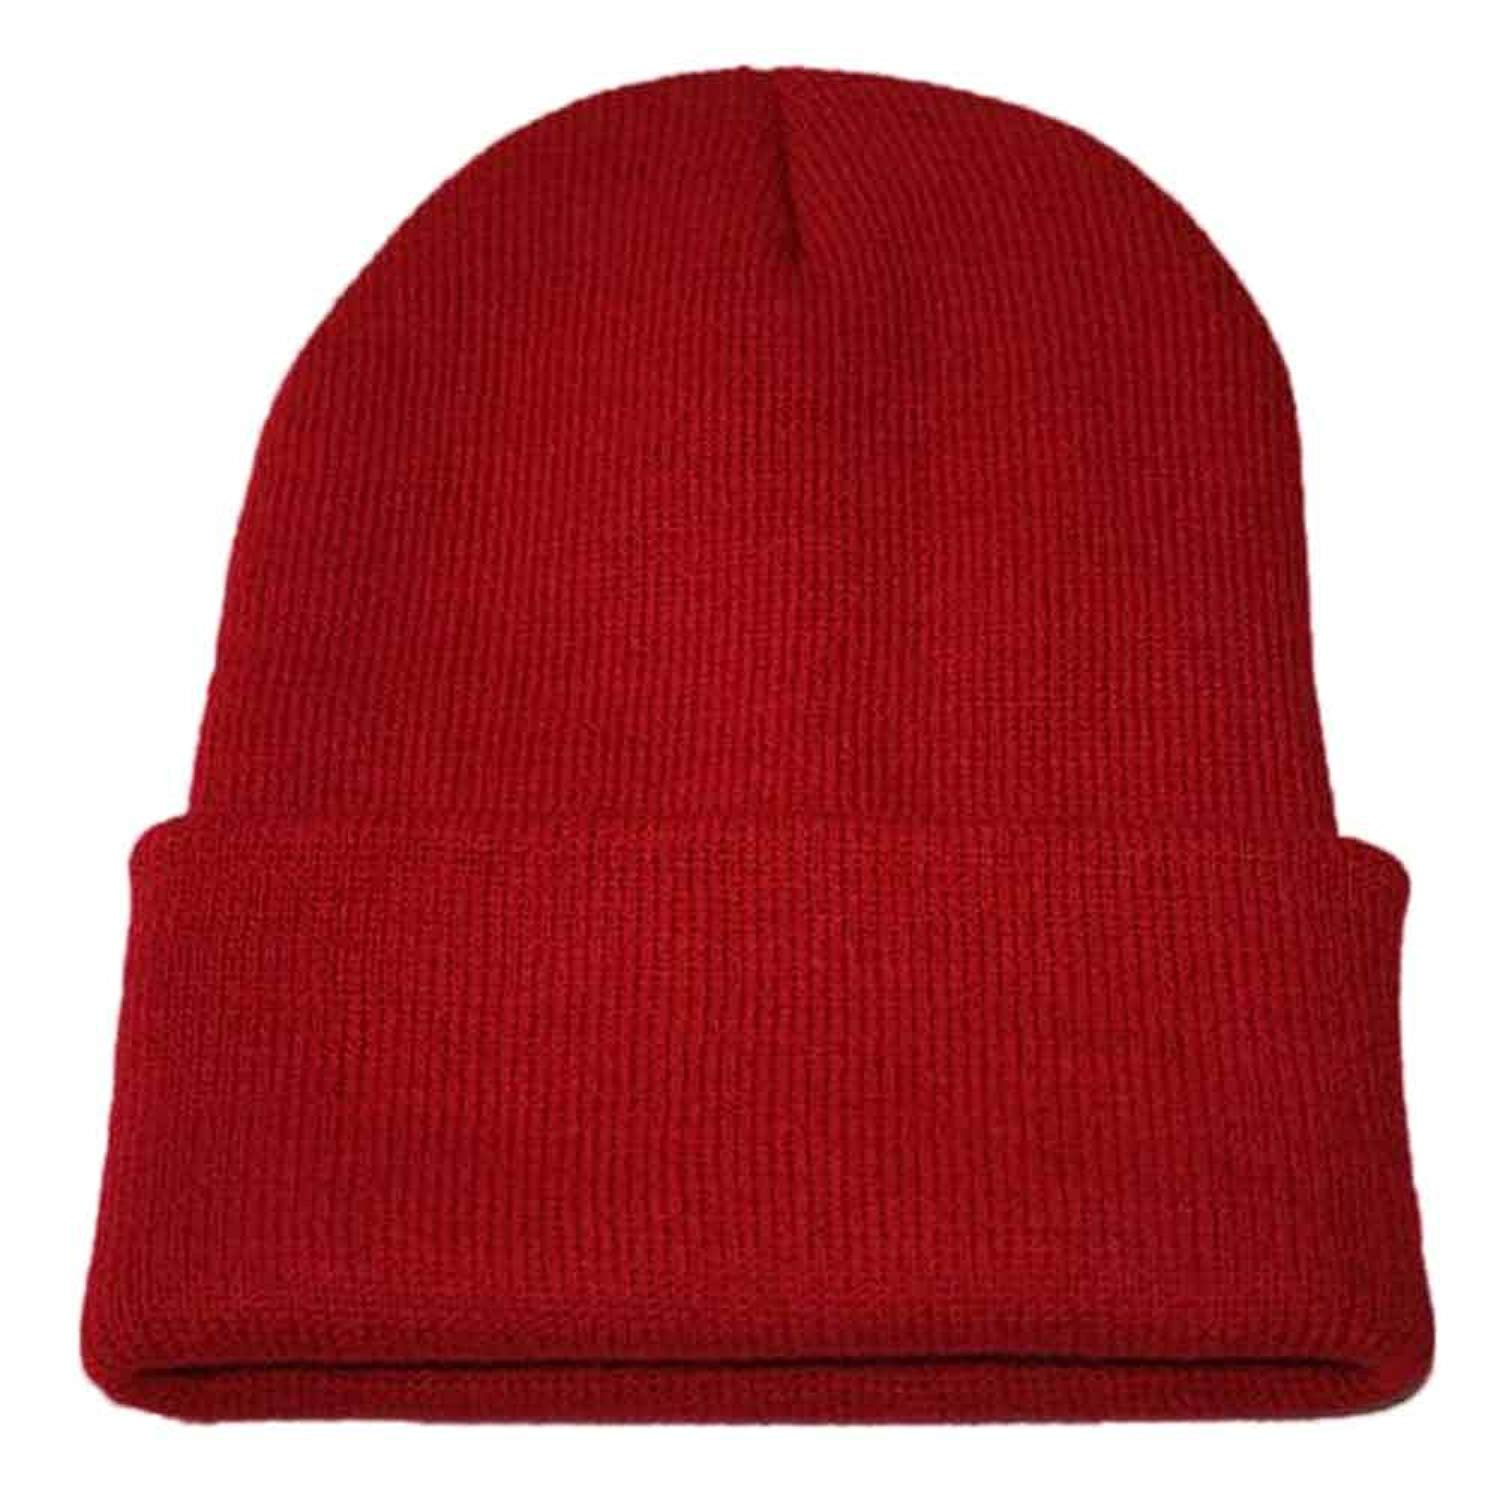 e945273e88f Get Quotations · Shybuy Unisex Warm Winter Hat Knit Beanie Skull Cap Cuff  Beanie Solid Hat Hip Hop Winter